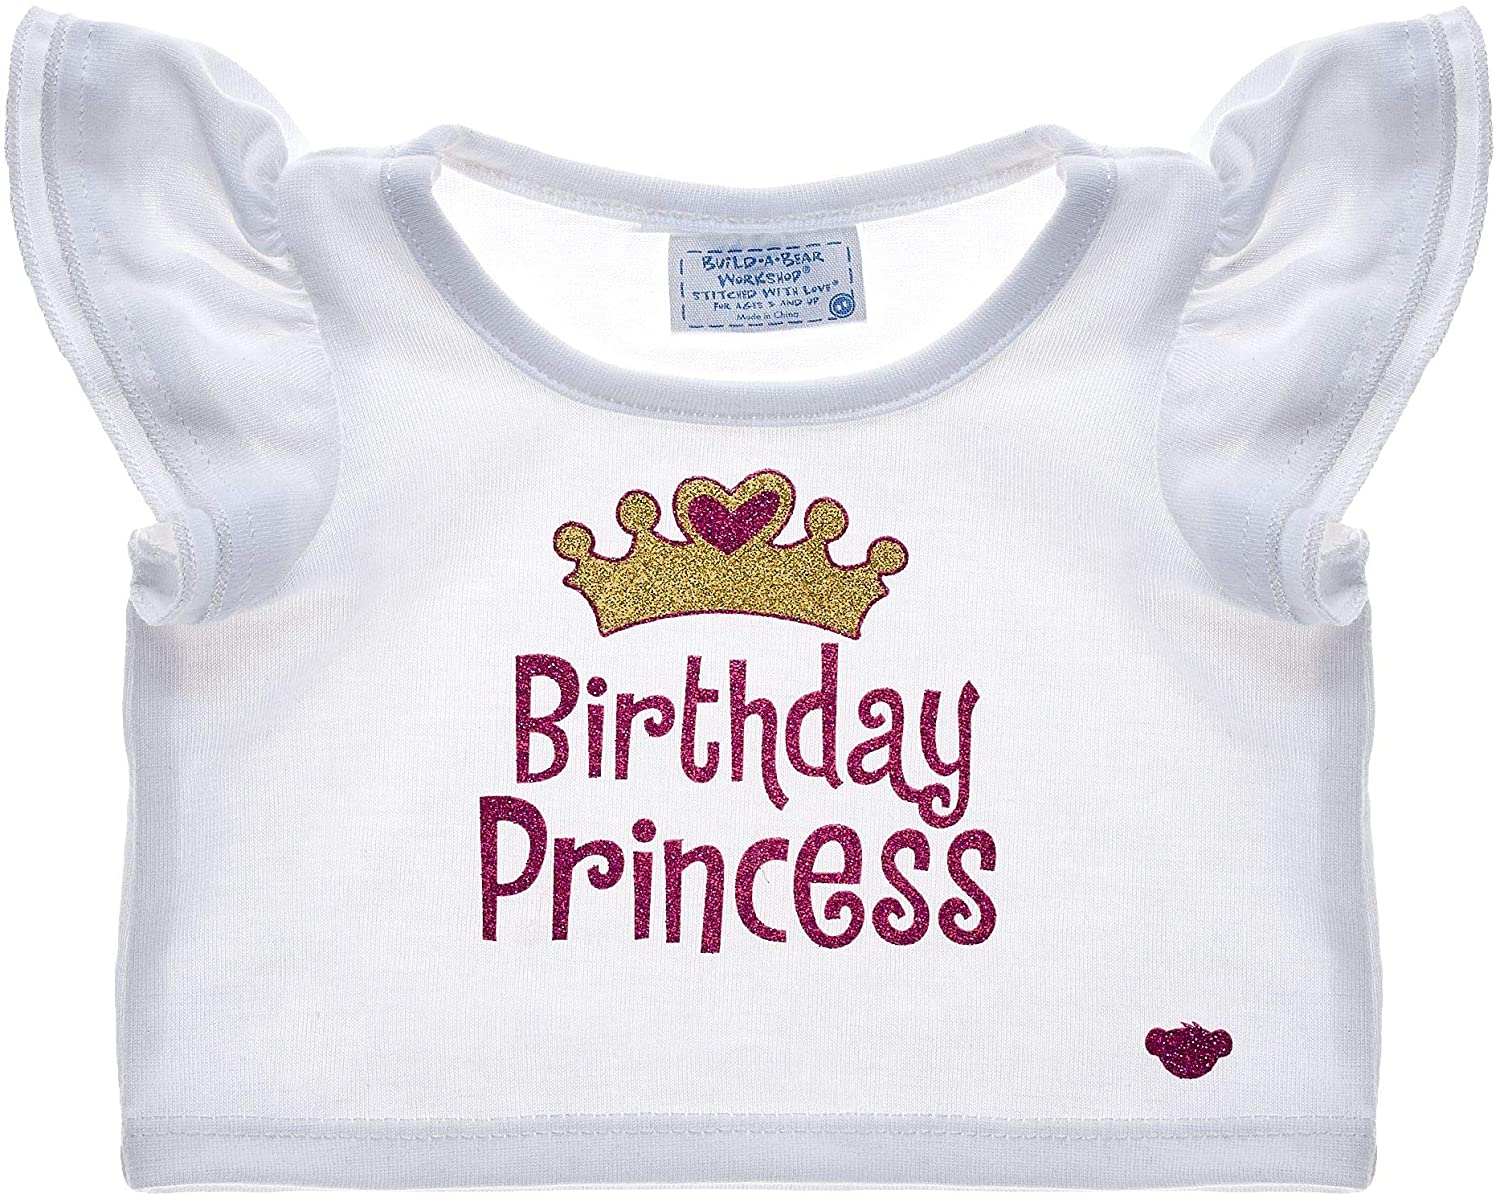 Build A Bear Workshop White Birthday Princess T-Shirt